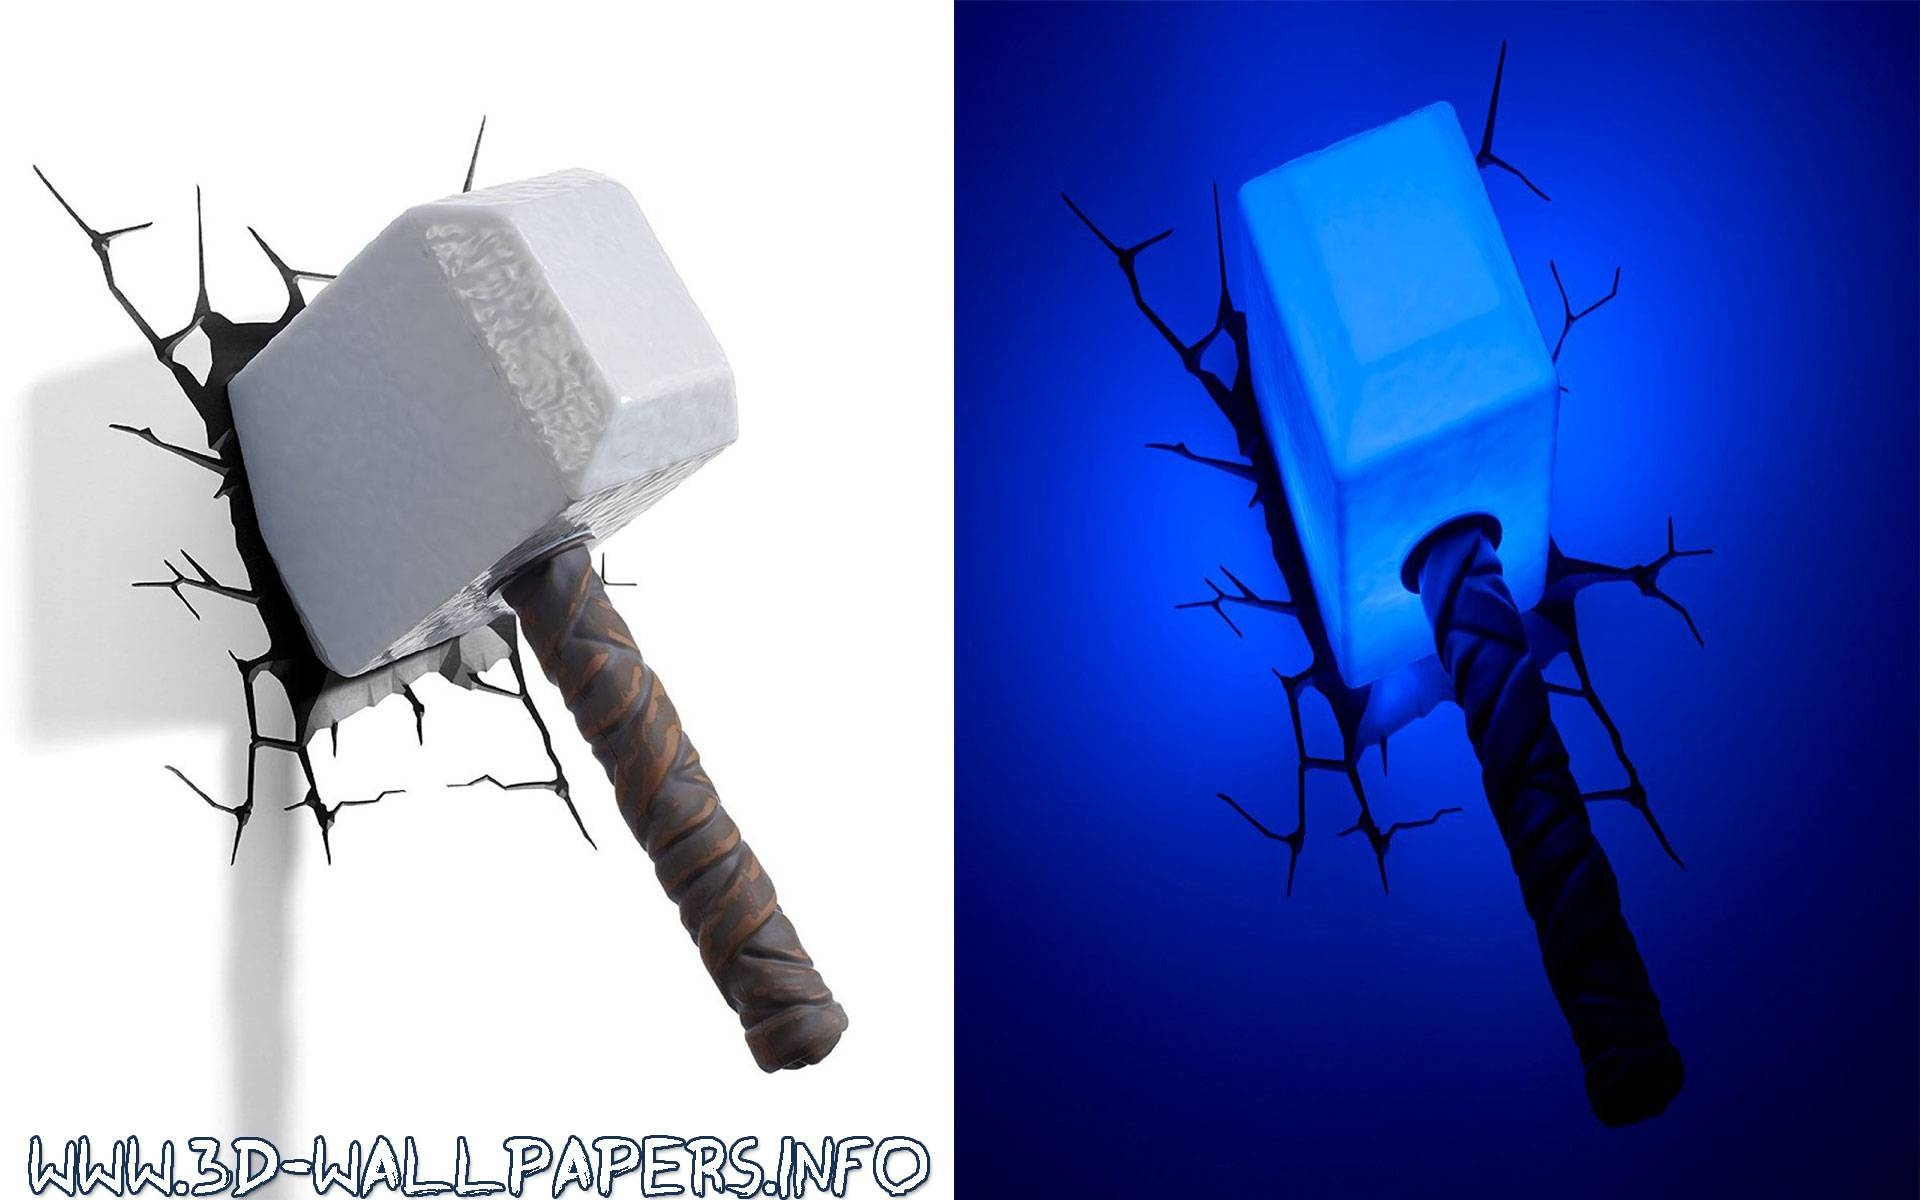 20 best ideas of 3d wall art thor hammer night light thor hammer 3d wall art decor night light lamp uk wallartideas with 2018 3d wall mozeypictures Image collections